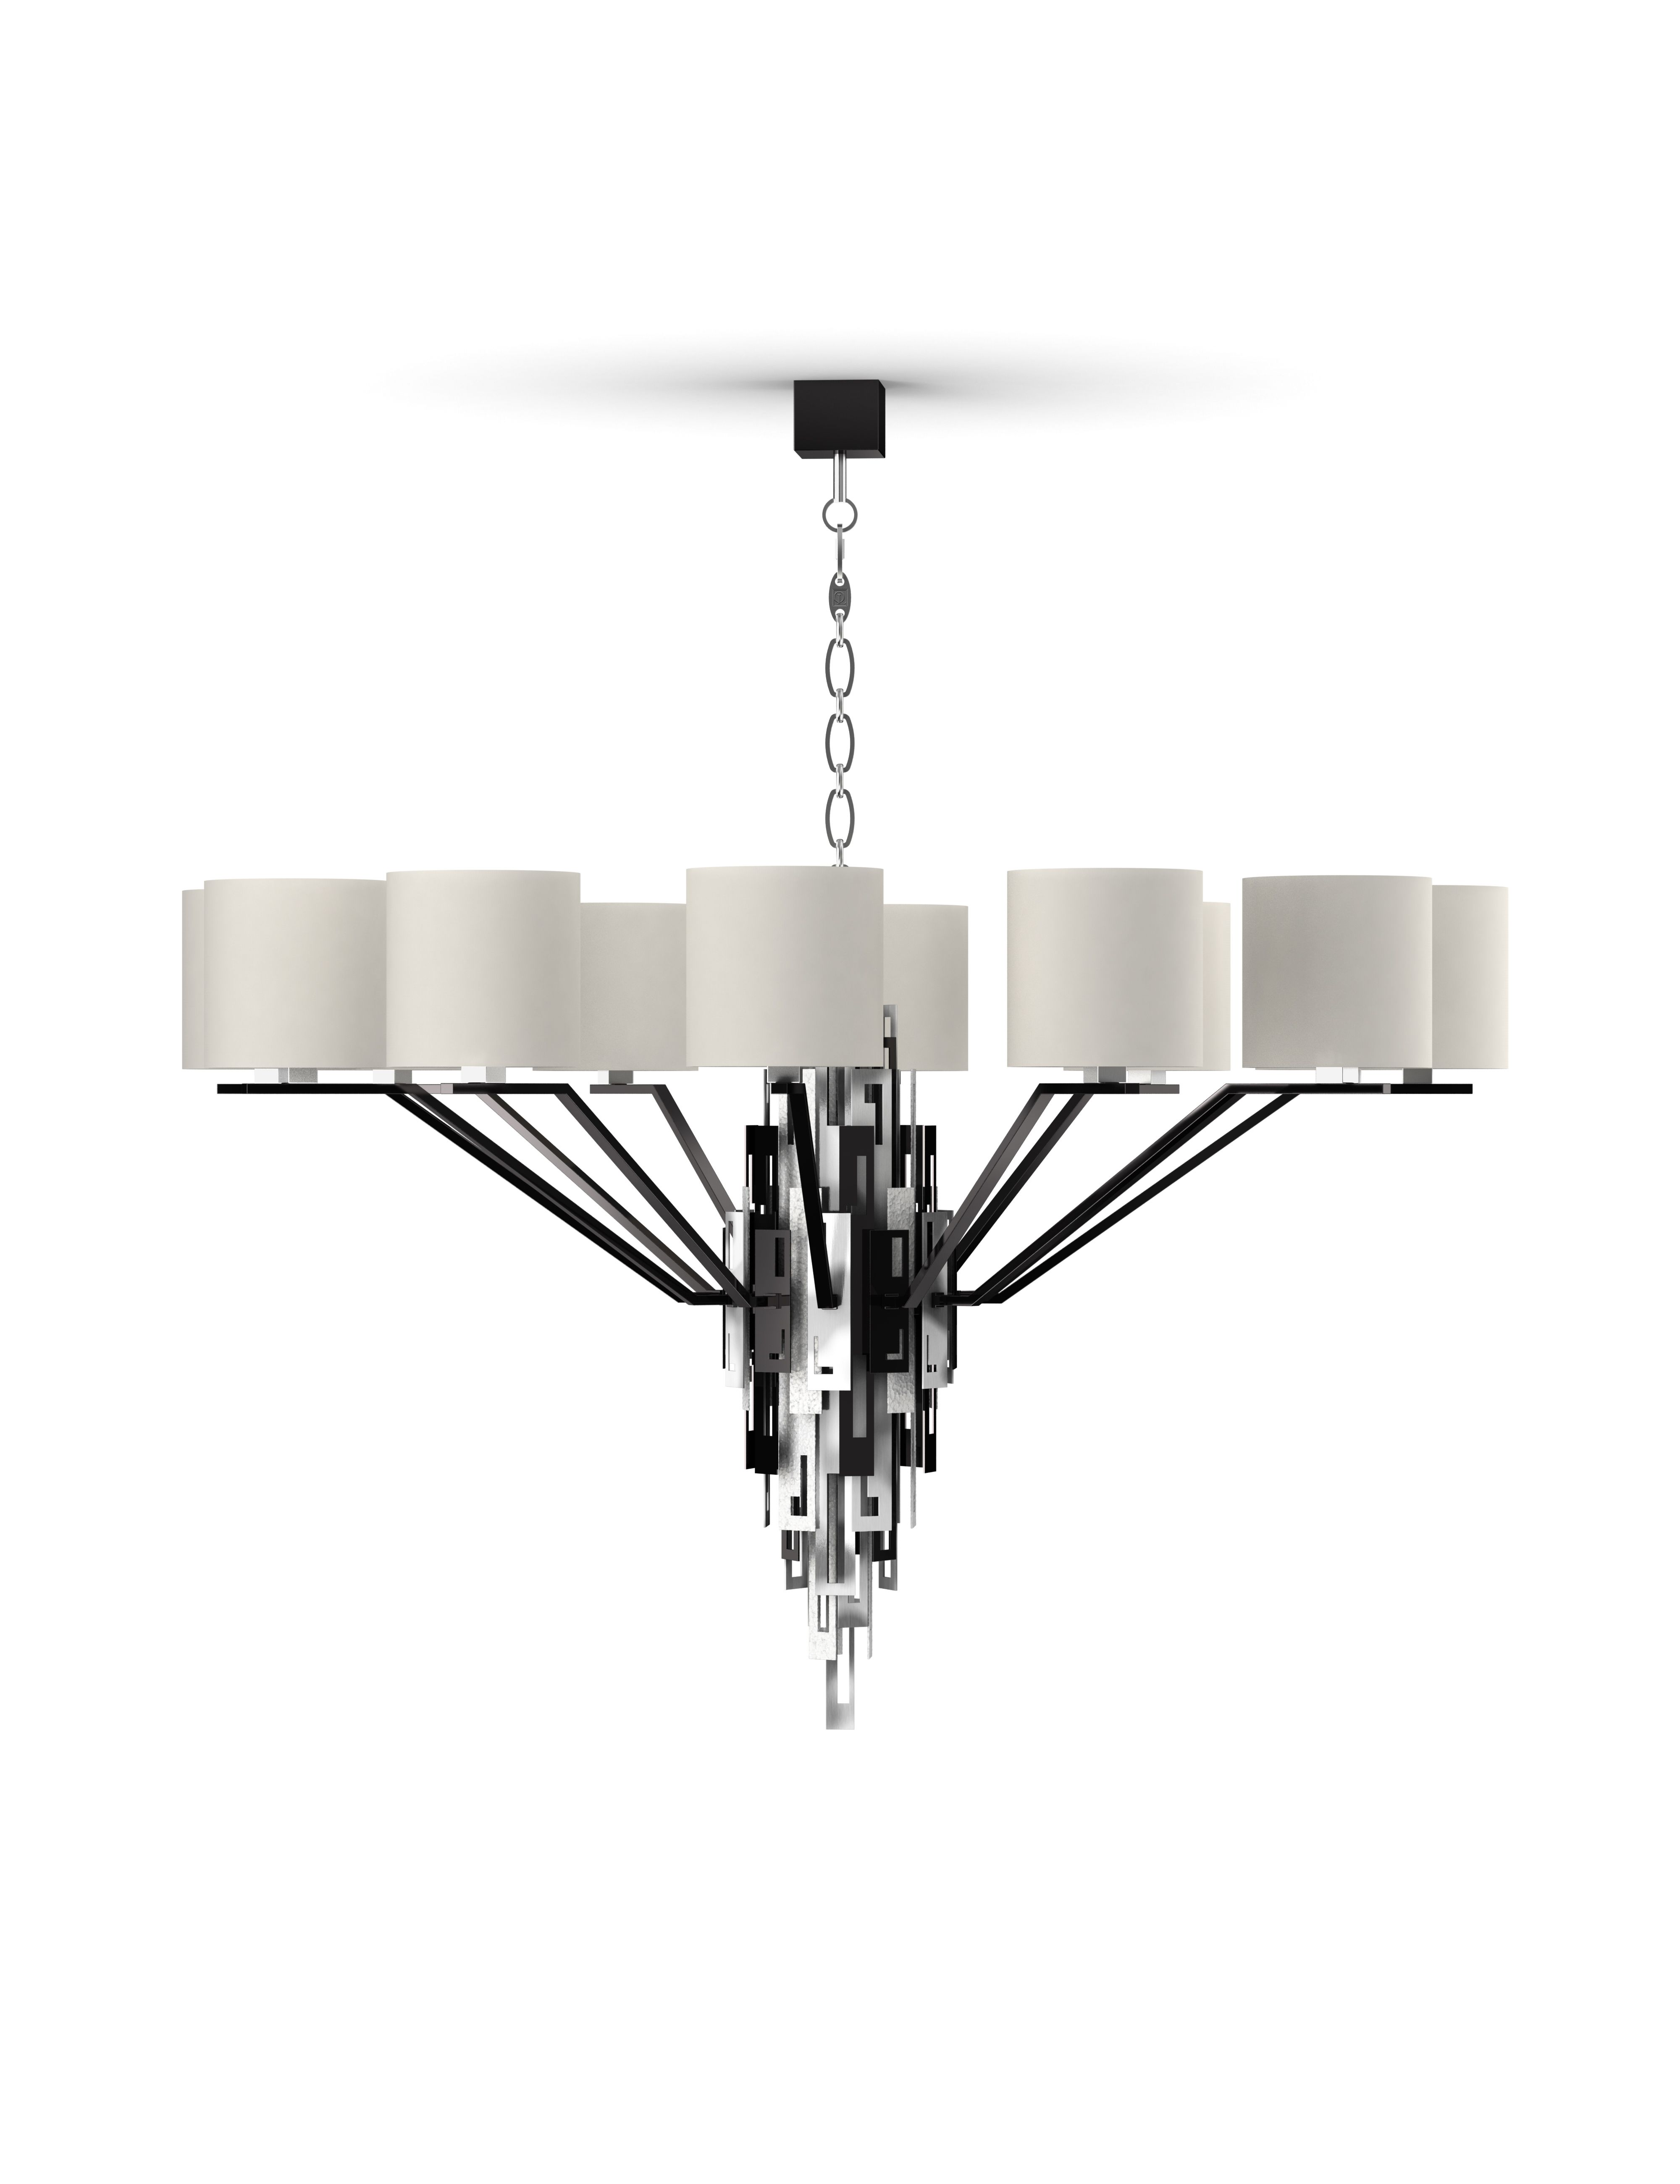 italian lighting fixtures. Italian Lighting,available In Different Finishes Lighting Fixtures